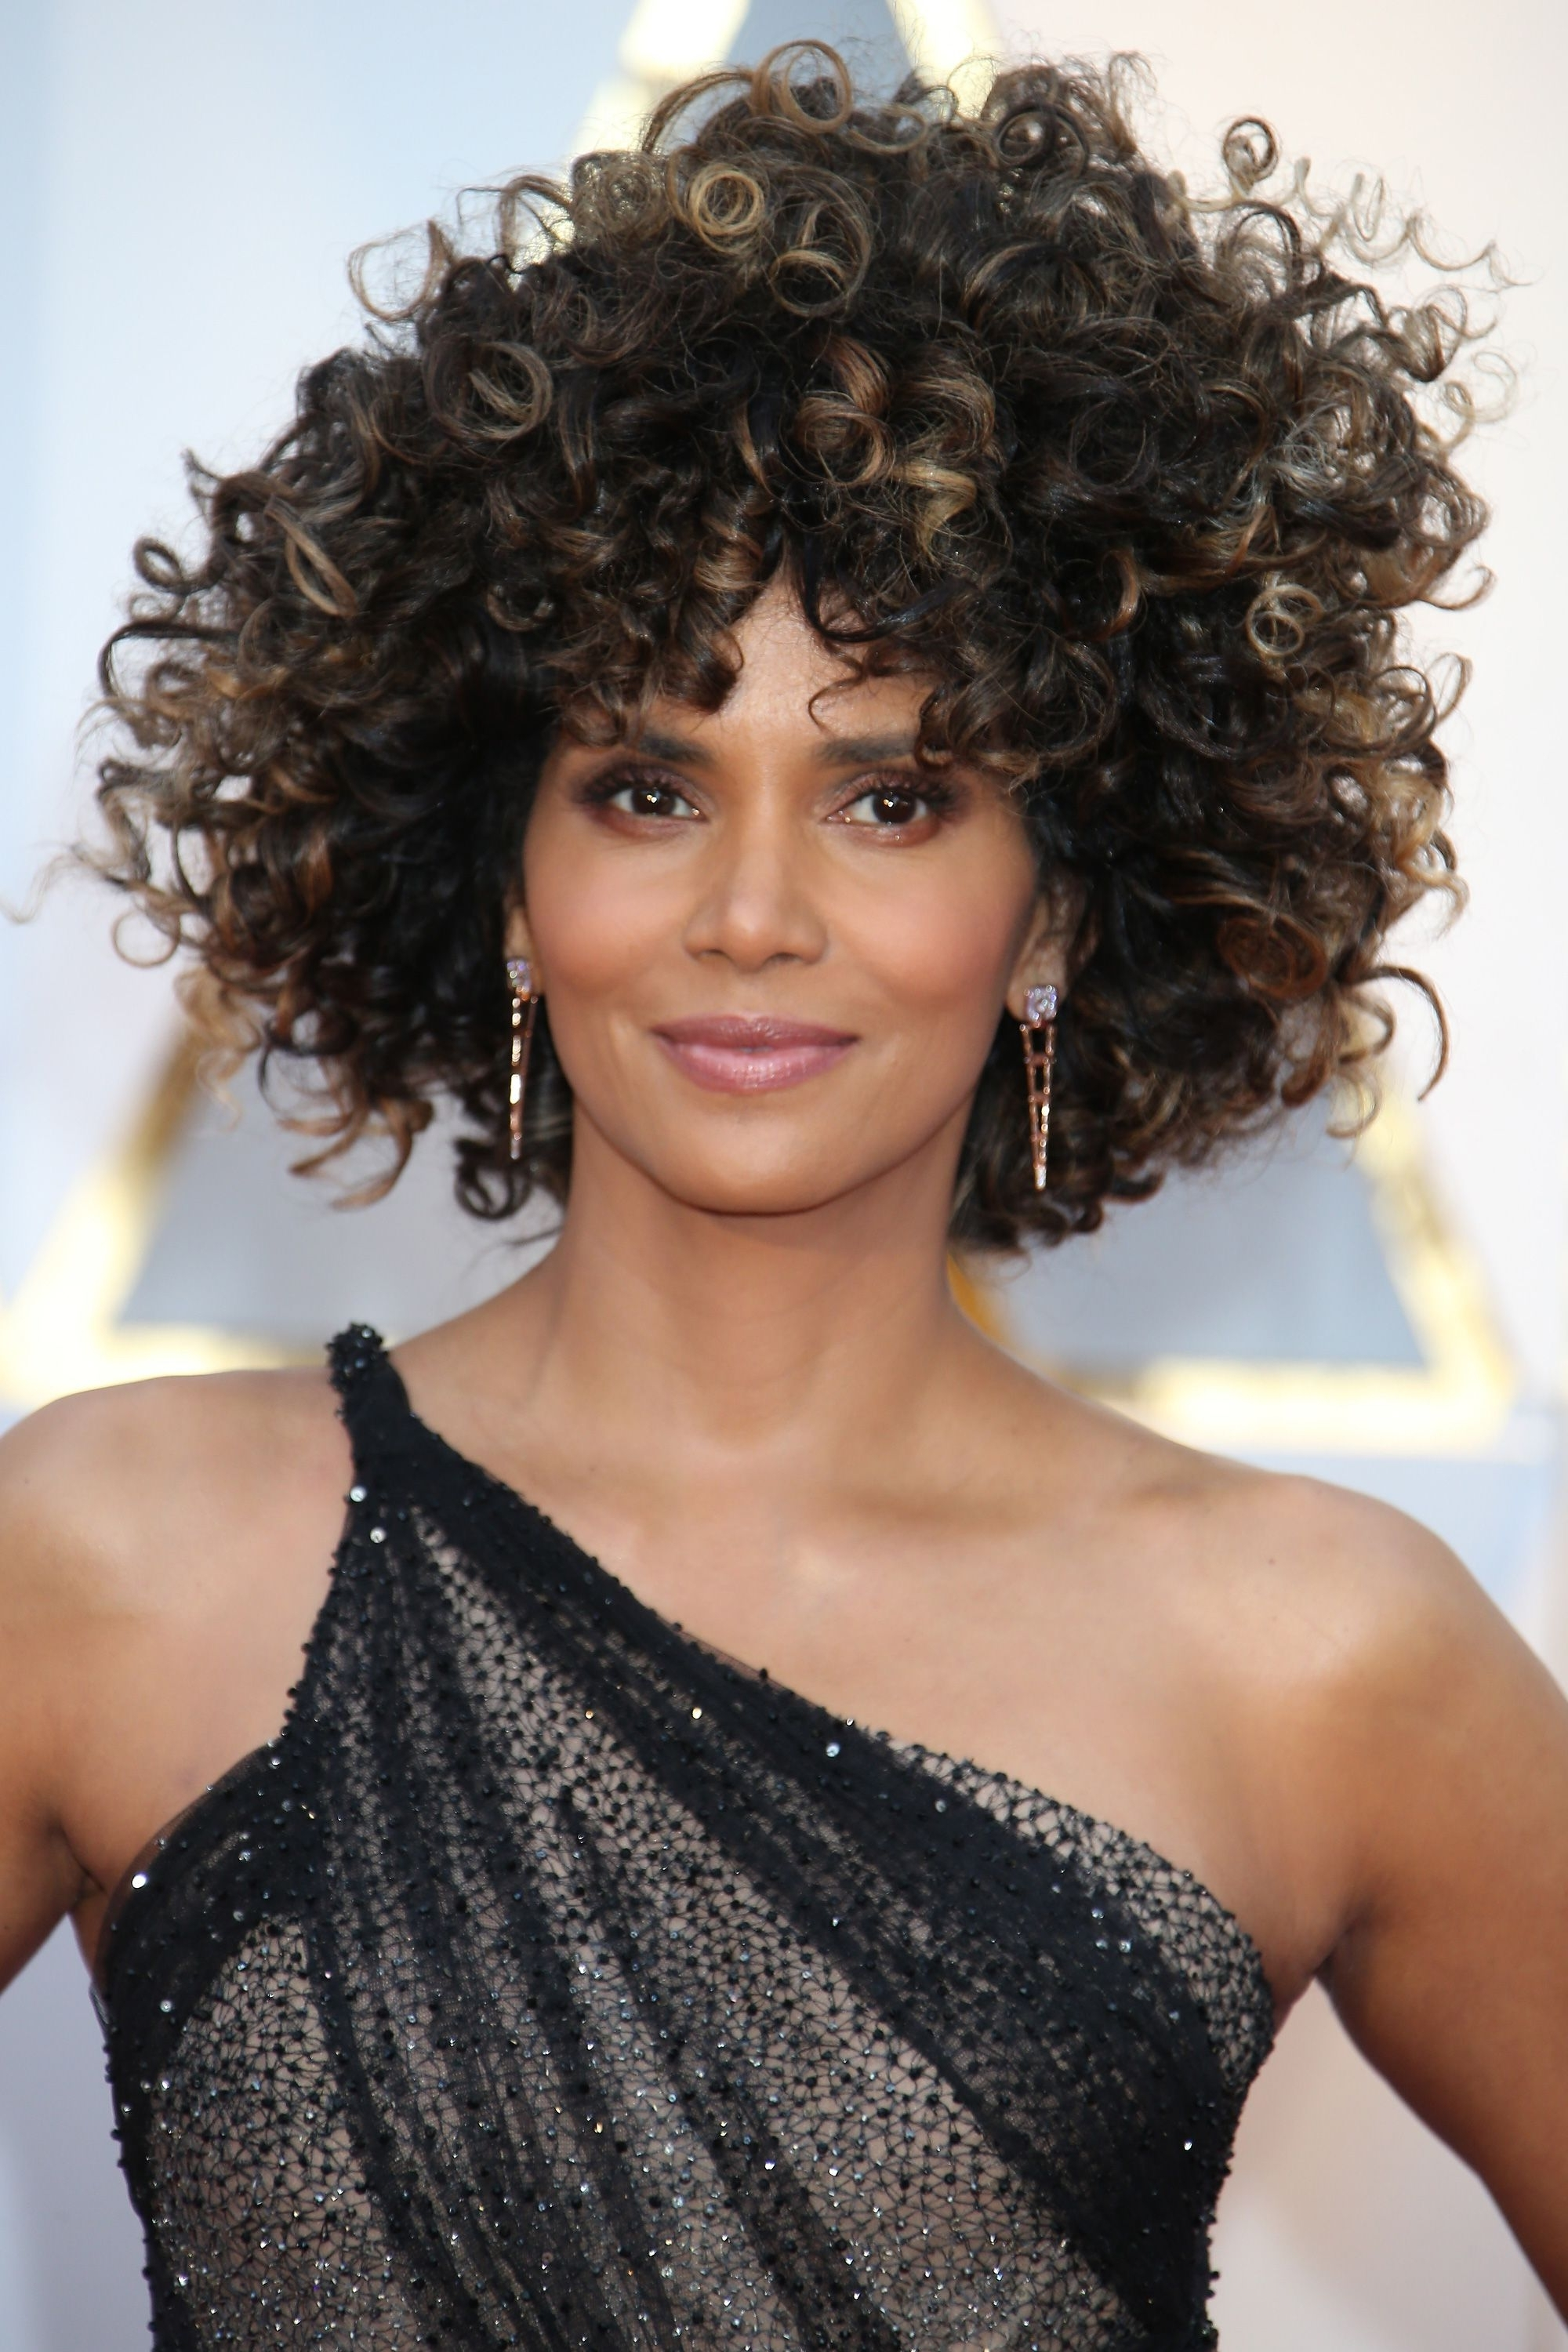 42 Easy Curly Hairstyles – Short, Medium, And Long Haircuts For For 2018 Natural Curly Pony Hairstyles With Bangs (View 5 of 20)